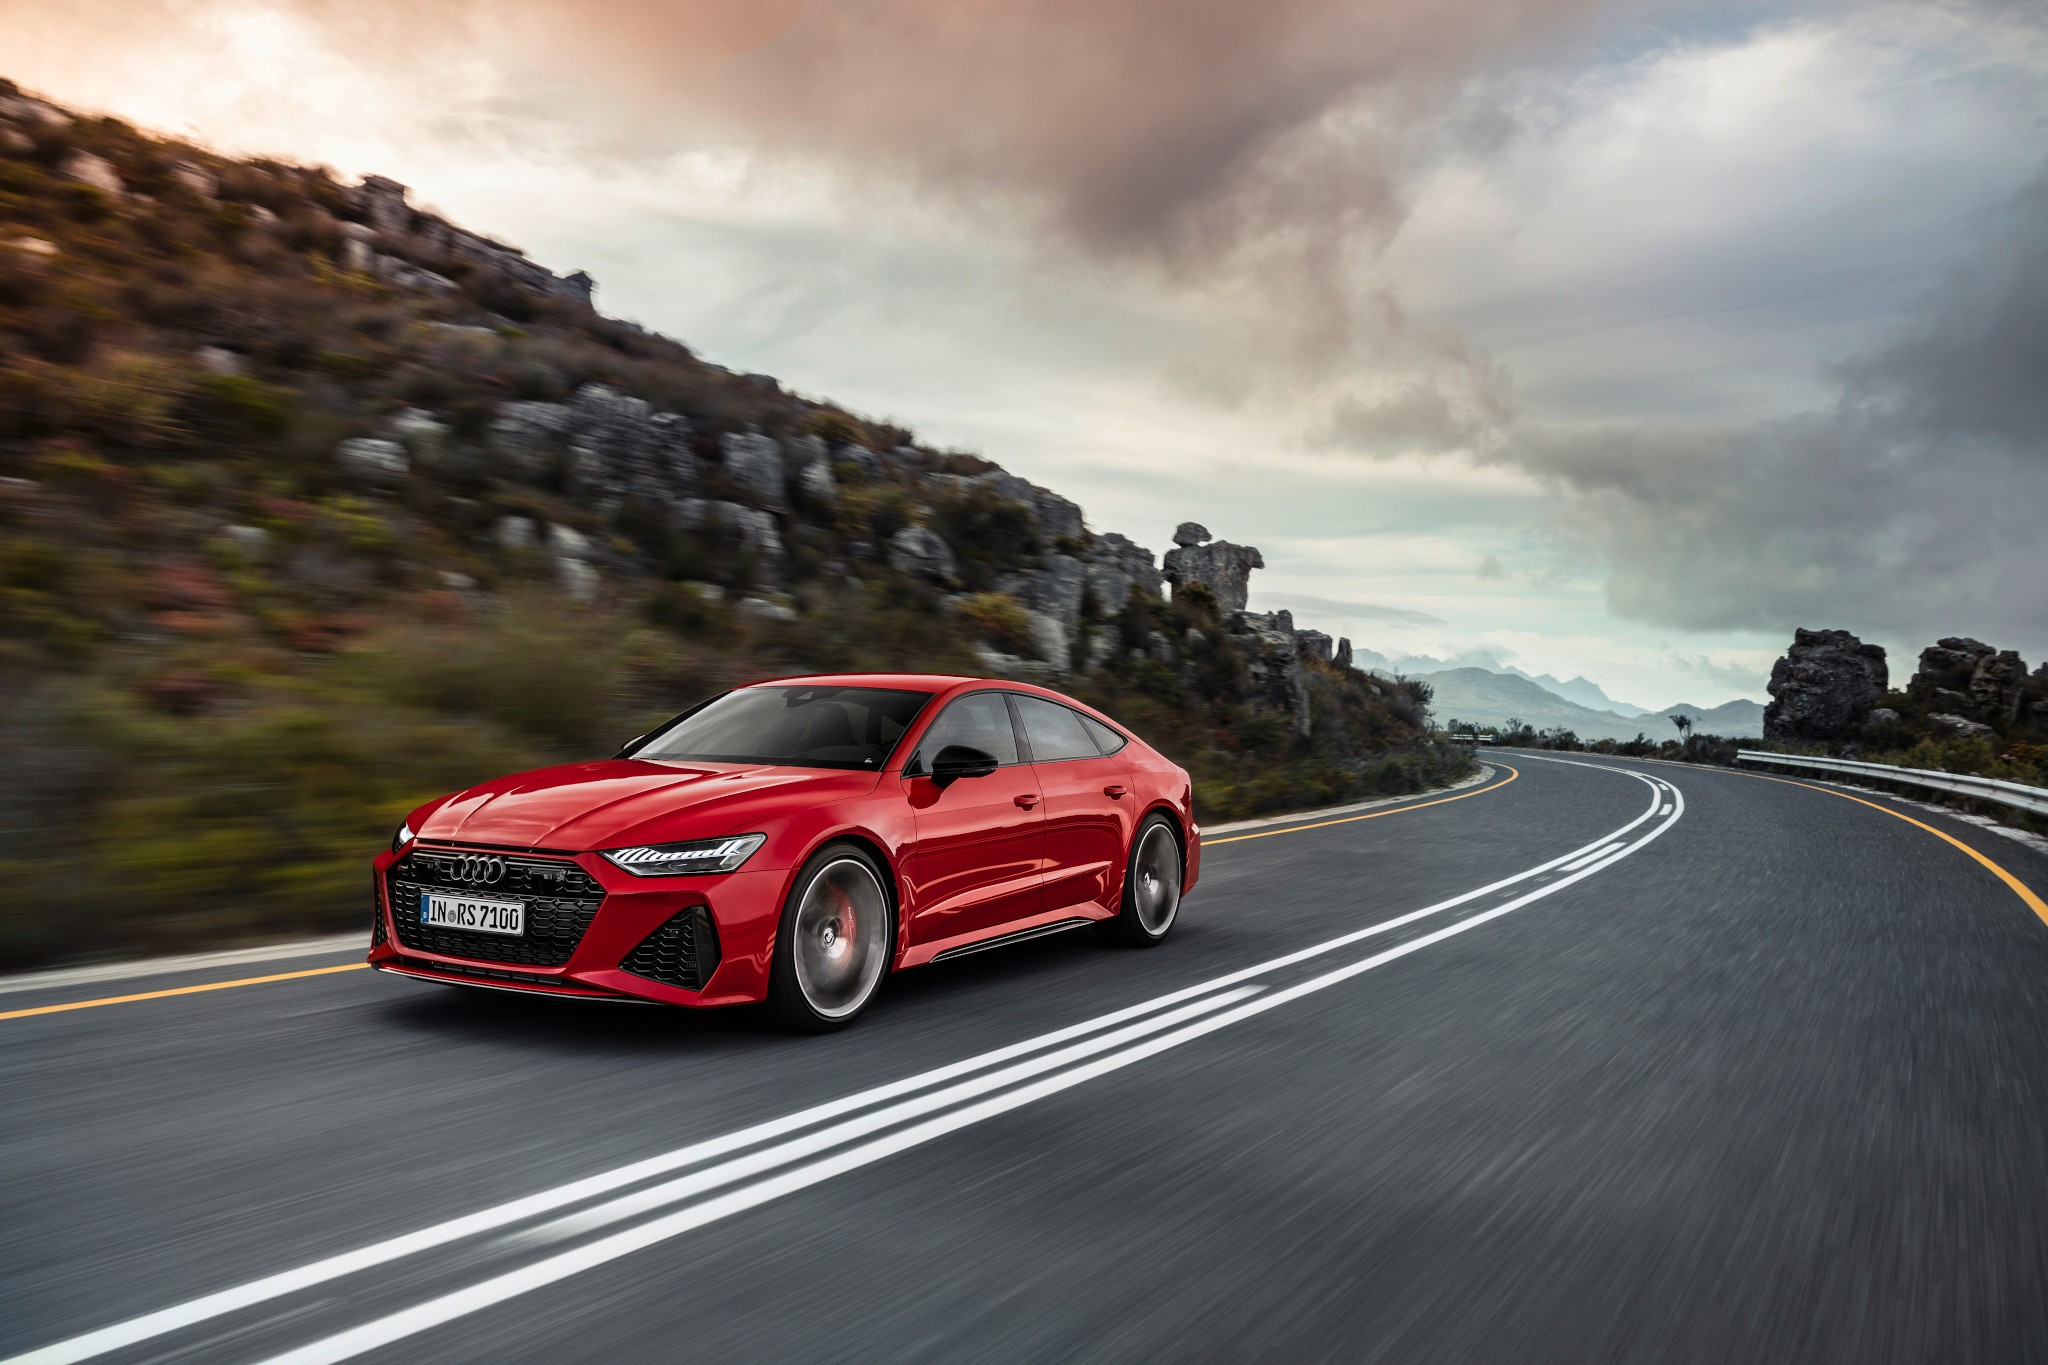 2021 Audi RS 7 Price and Specs: My Baby Is Back